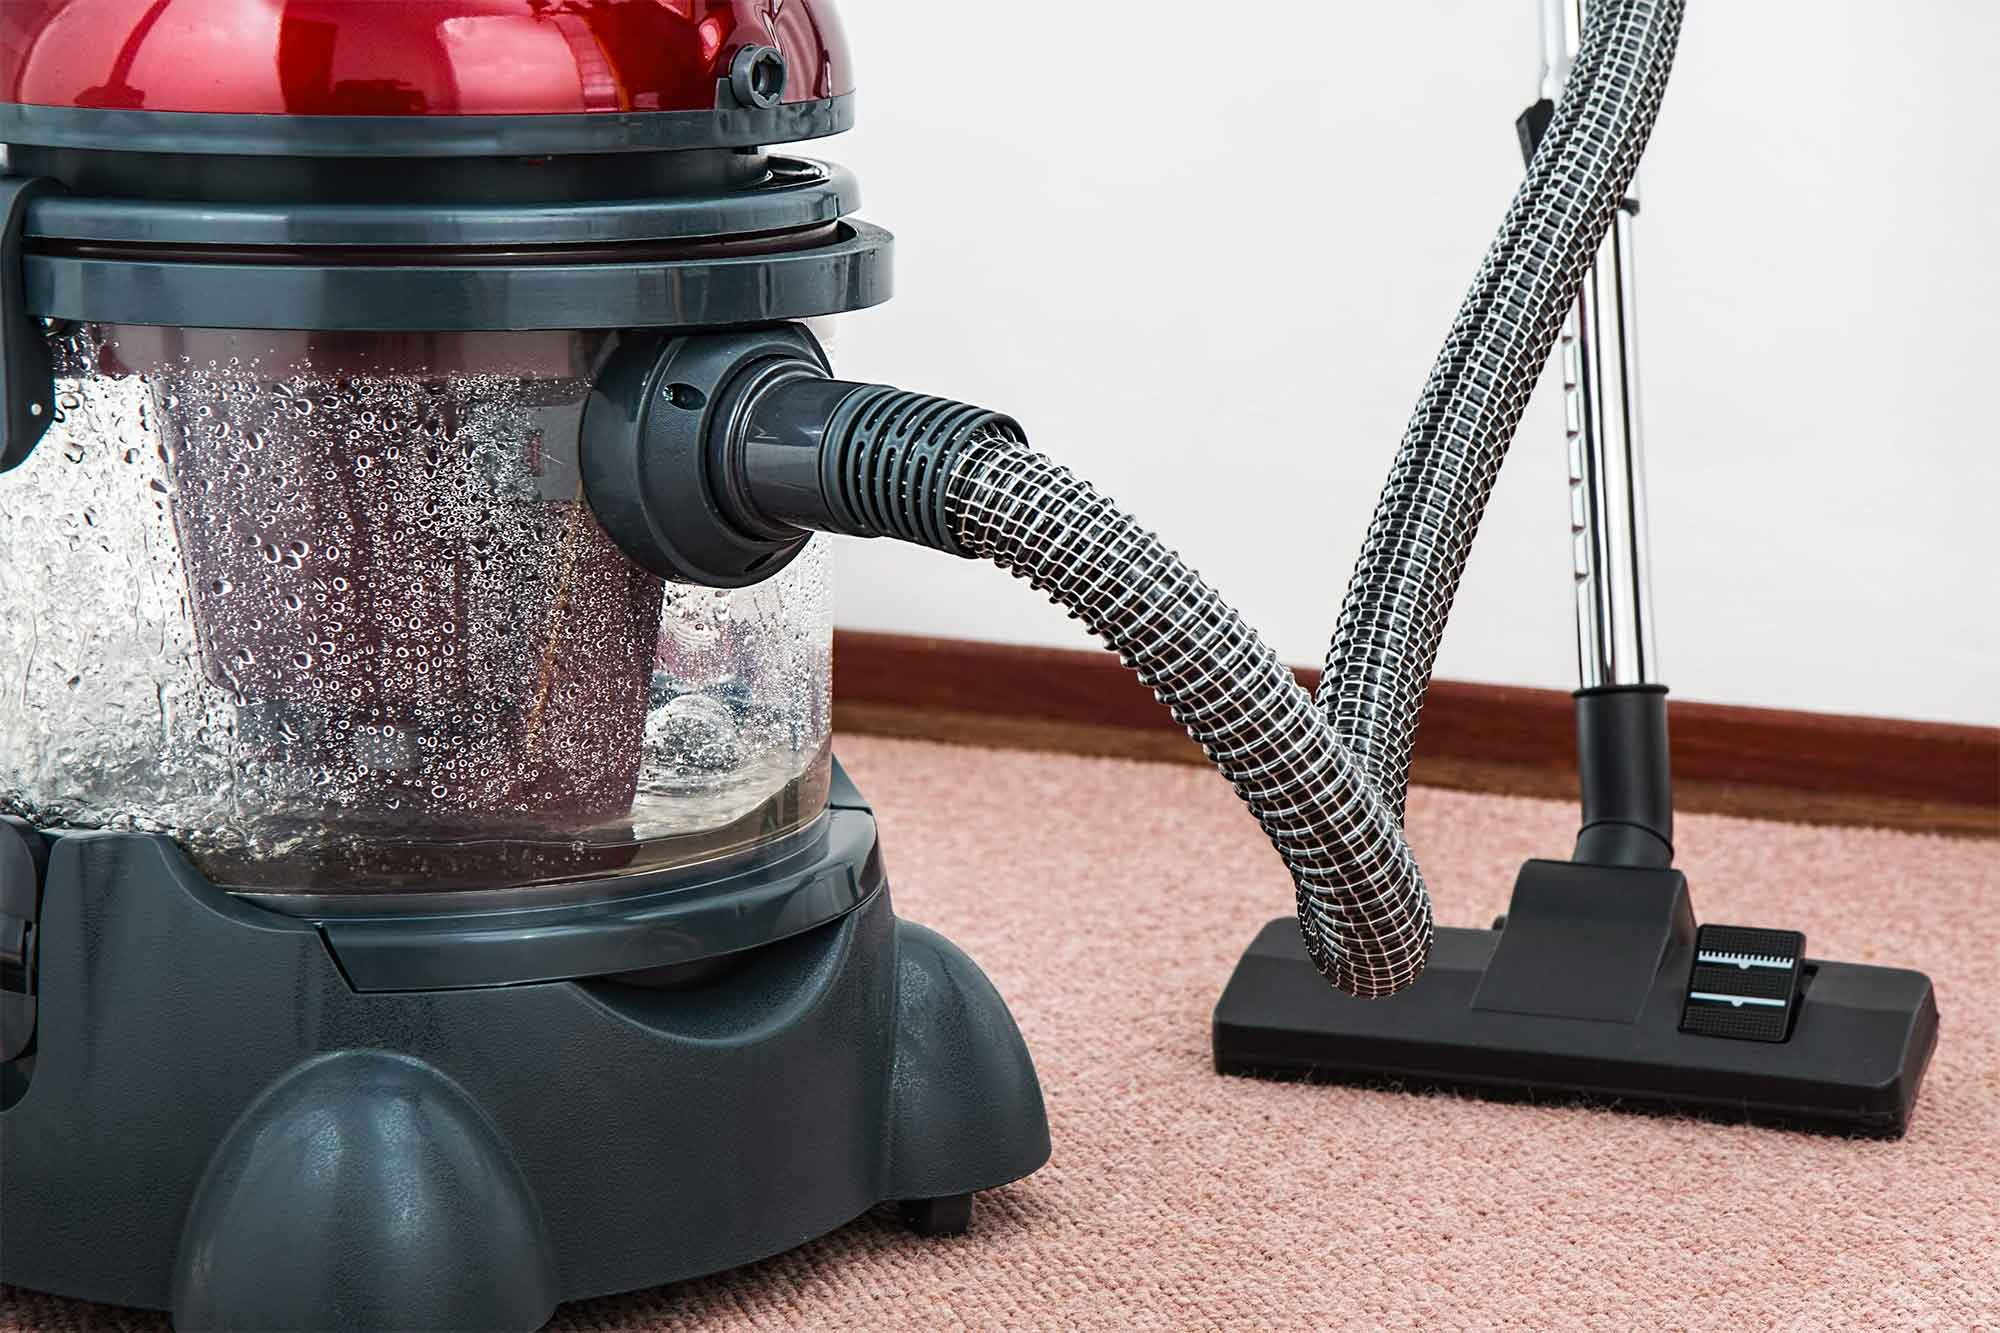 Heavy duty carpet cleaning system